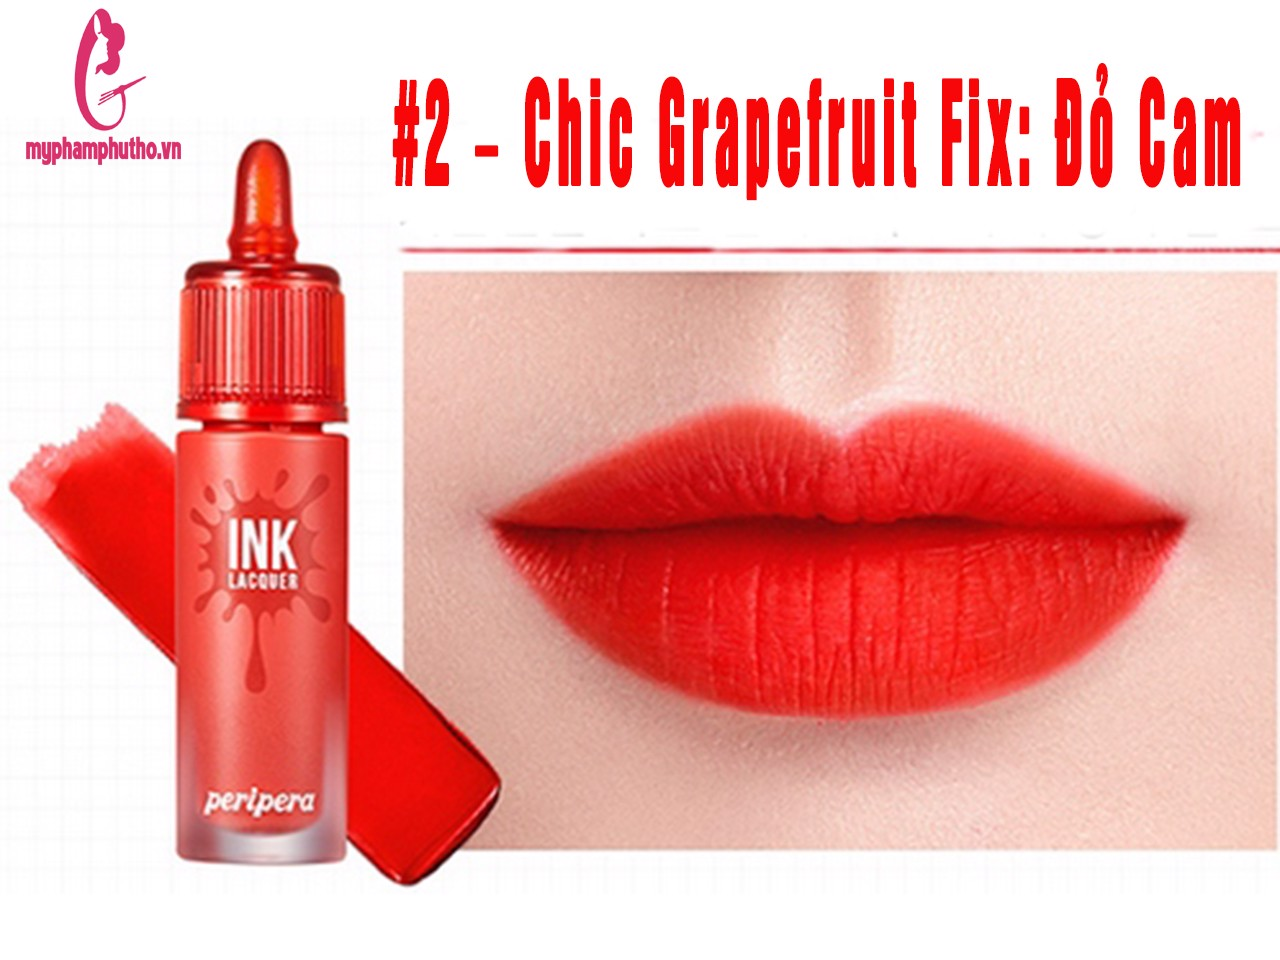 Son kem lì Peripera Ink Lacquer Lip Tint #2 – Chic Grapefruit Fix: Cam Chói Chang